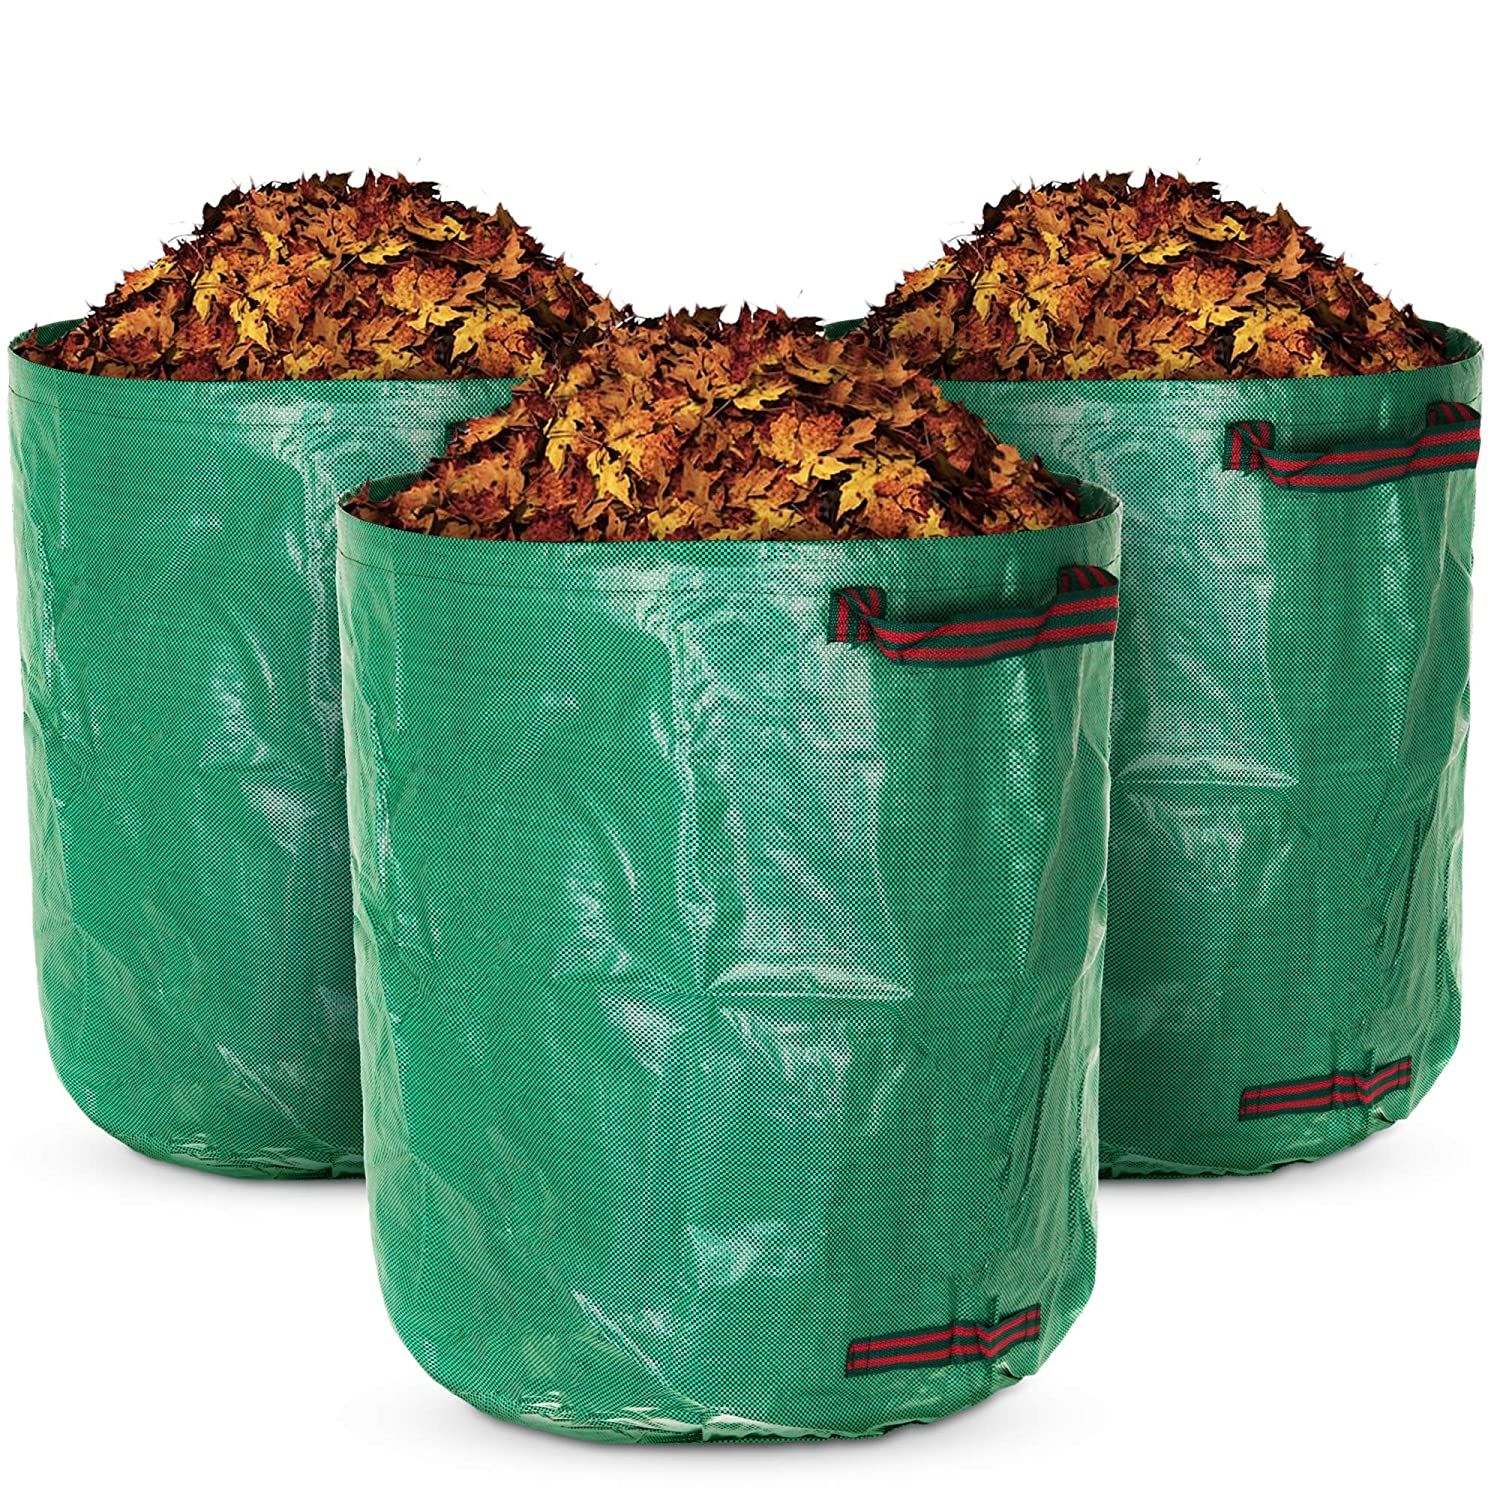 60 Litre LIVIVO Set of 3 Premium Heavy Duty Reusable Garden Waste Bags with Extra Secure Handles and Strong Flexible Hoop to Increase Stability